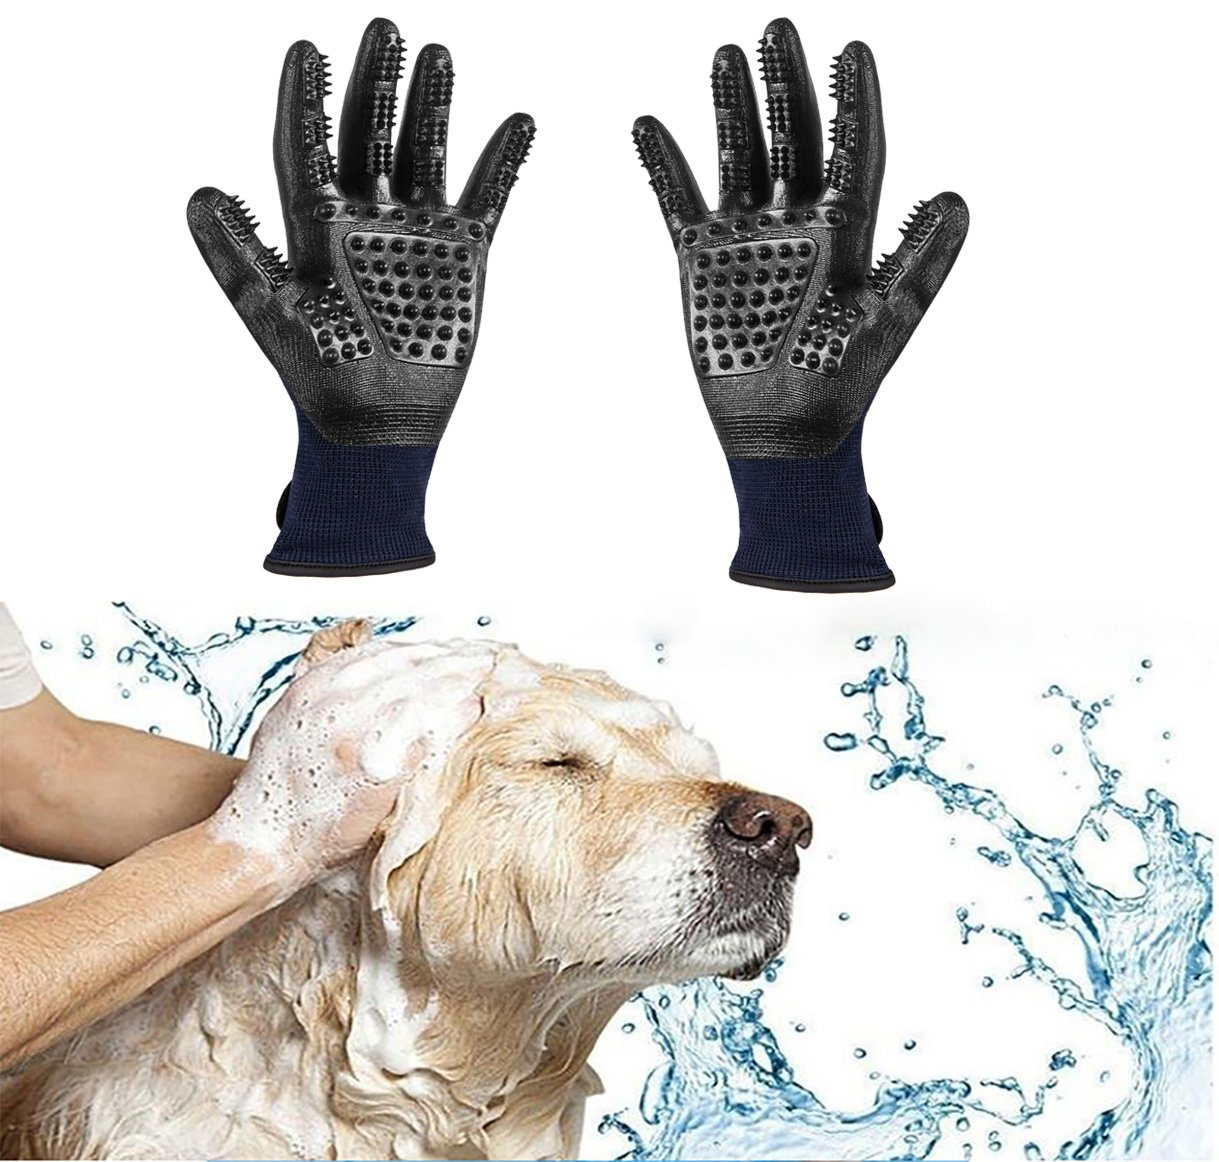 Trendcode Pet Deshedding Gloves - Efficient Pet Hair Remover, Grooming Mitt Brush Tool - Good Dogs Cats Horses Bathe Wash by Trendcode (Image #6)